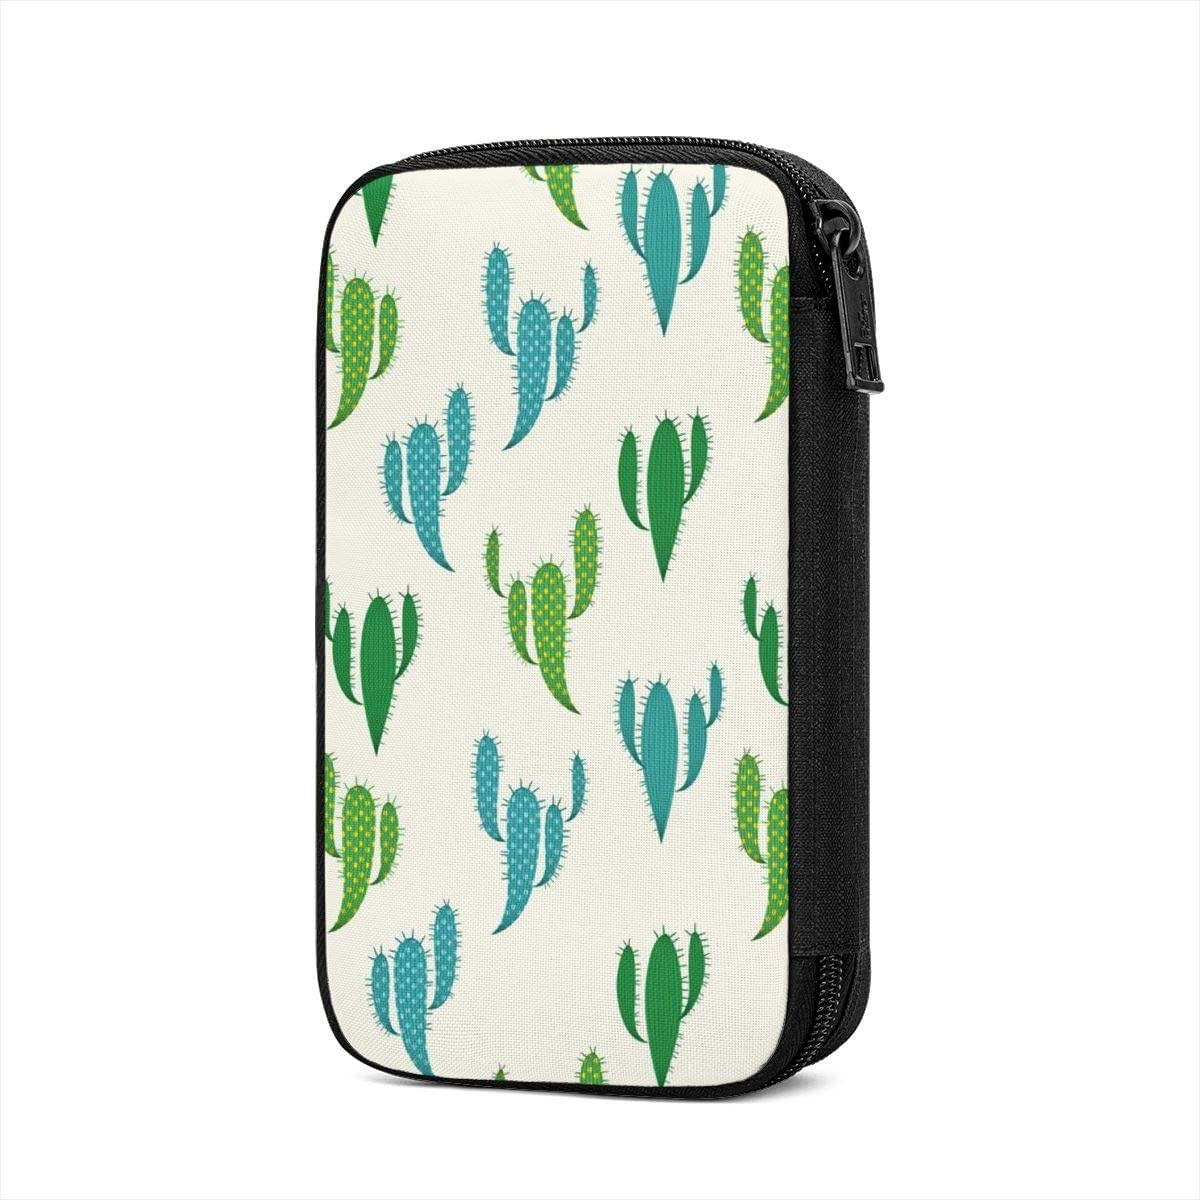 Osvbs Hand Drawn Cactus Electronics Seattle Mall for Lay Organizer Shipping included Double Bag